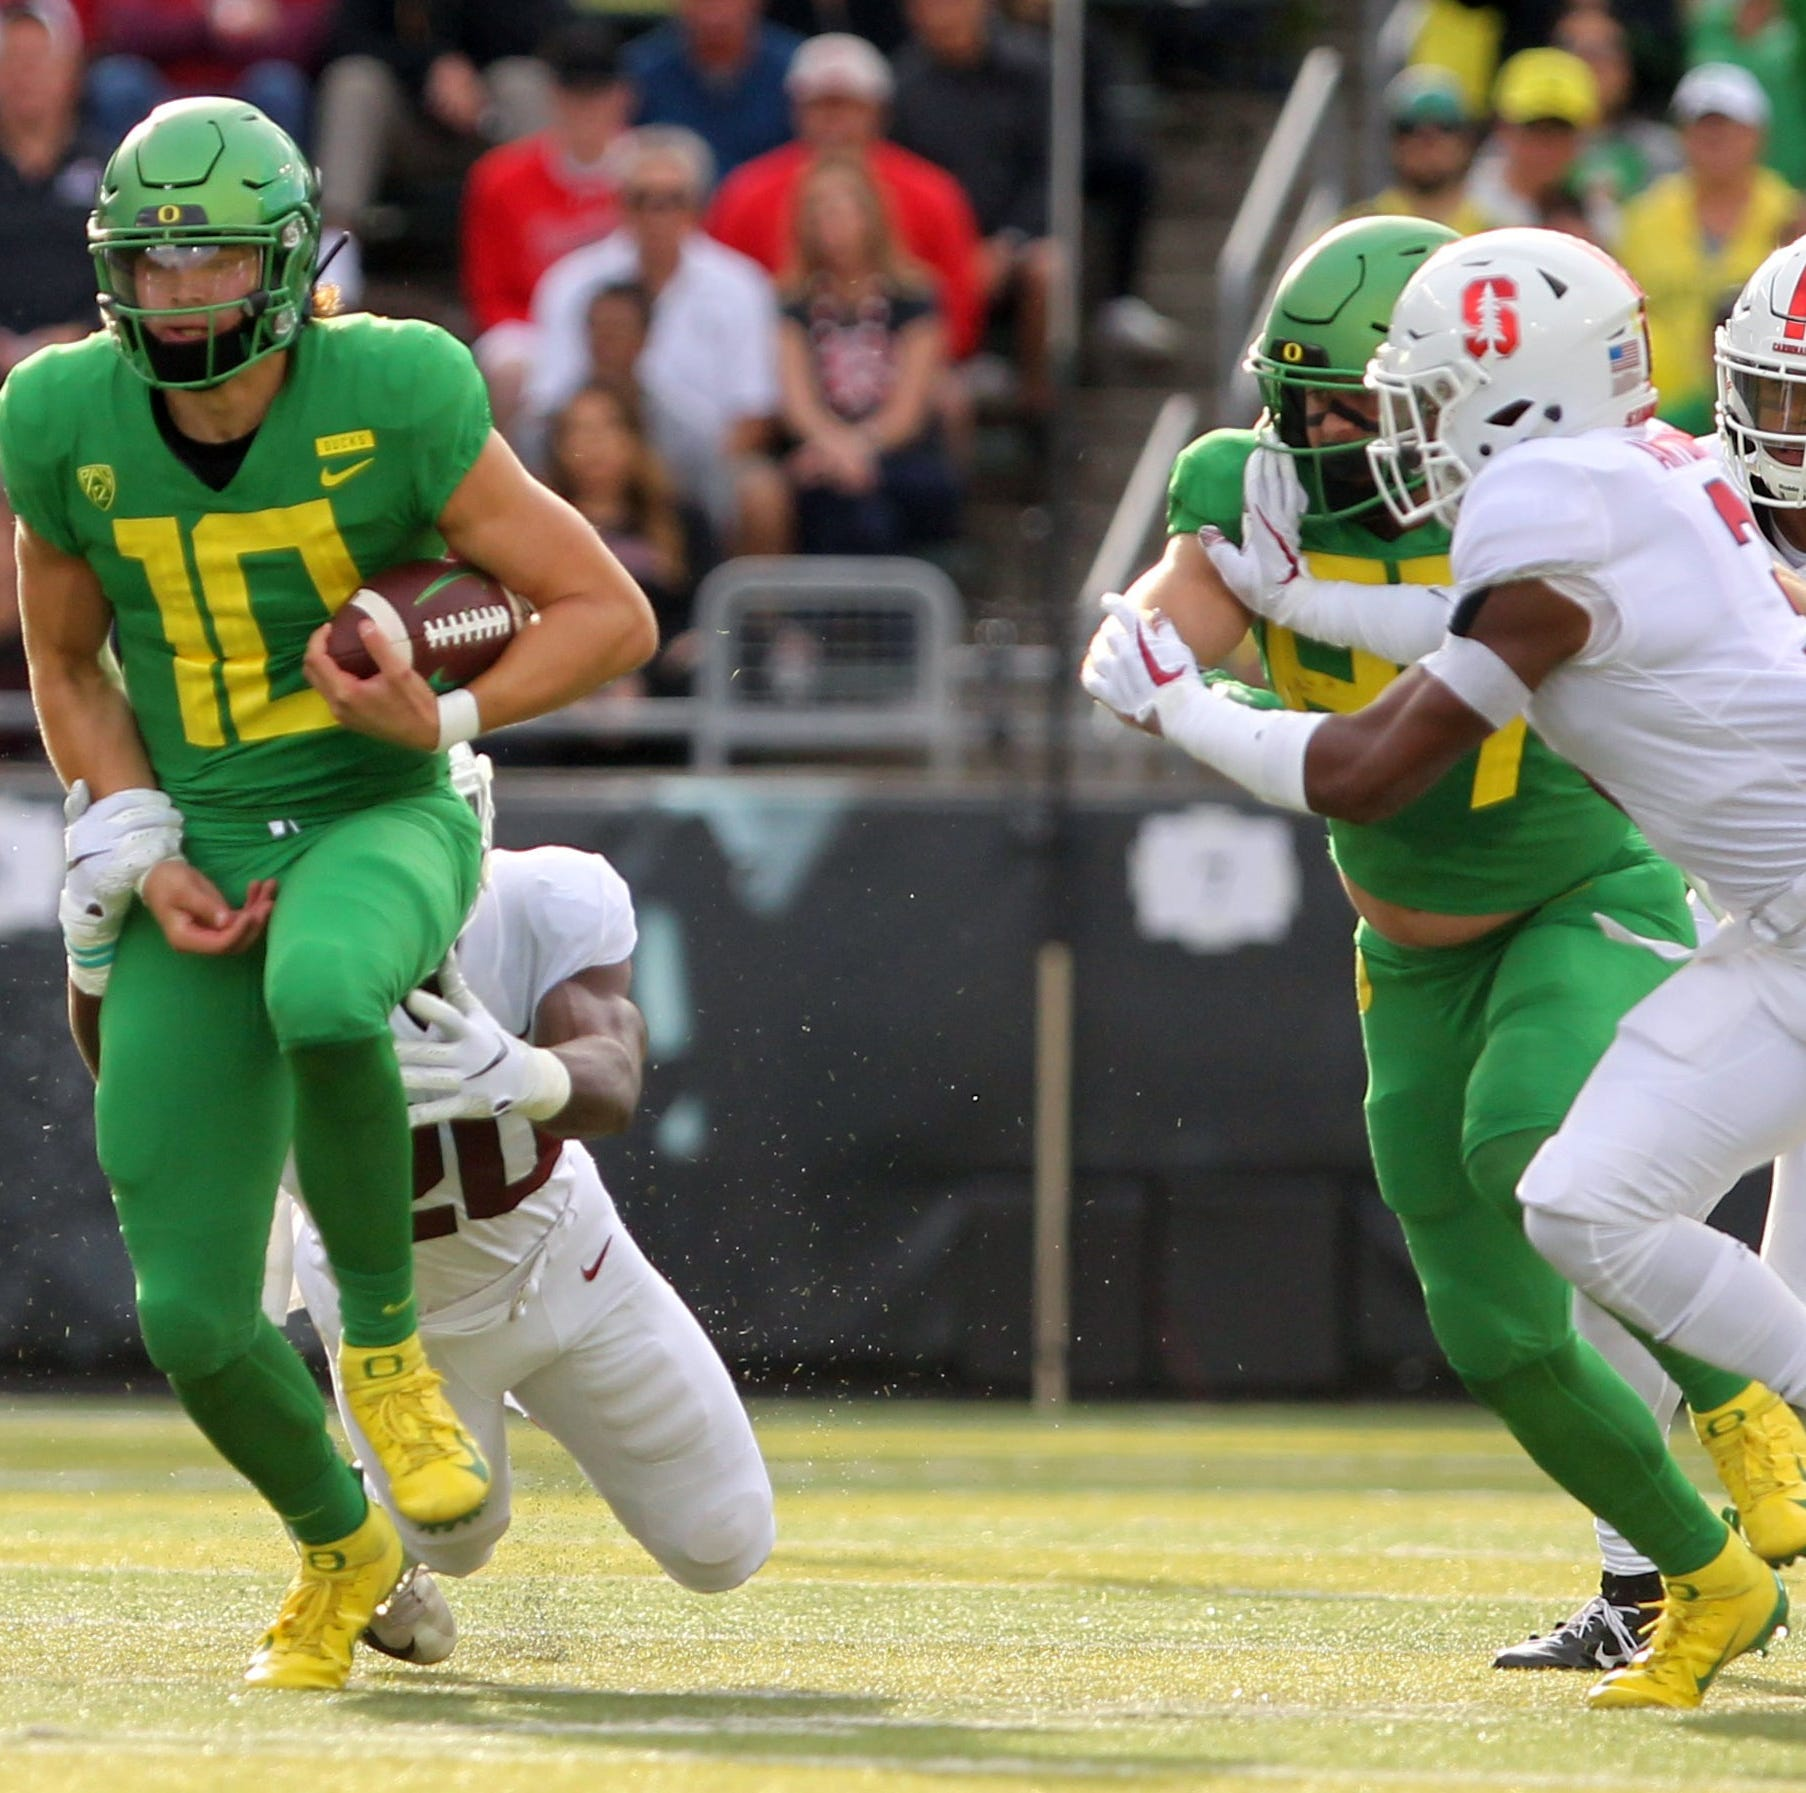 Oregon Ducks squander lead, lose to Stanford